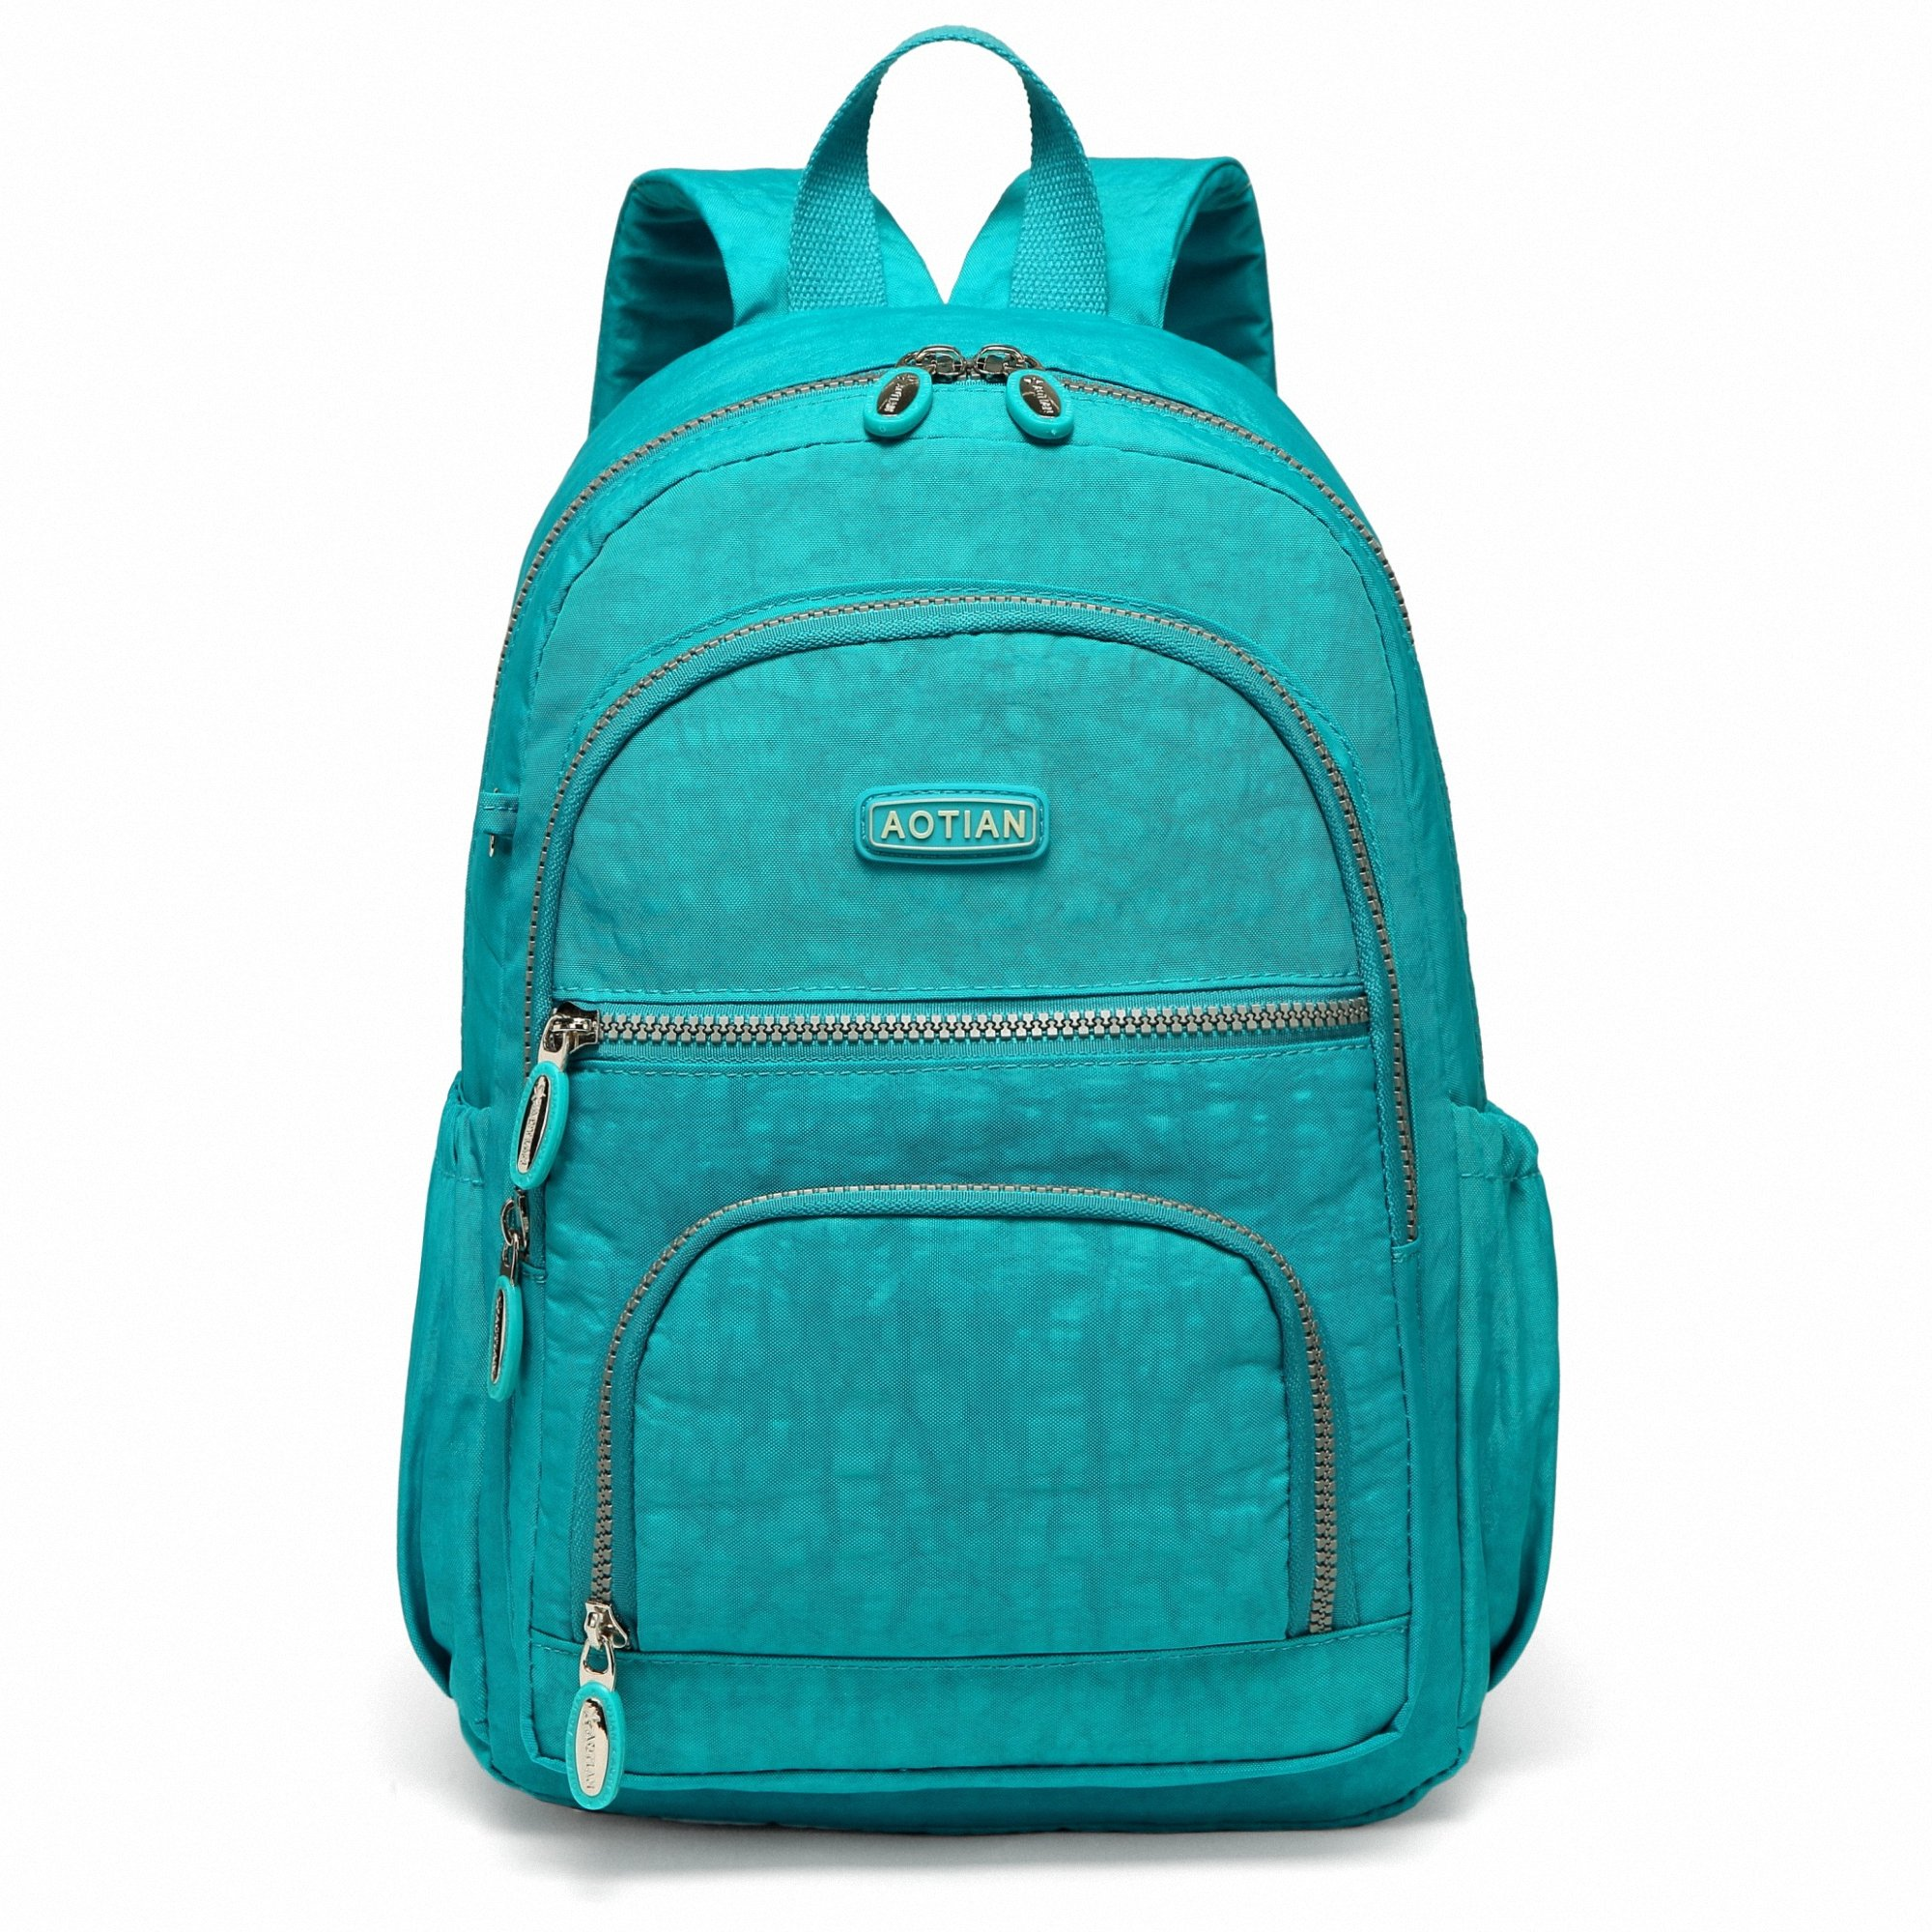 AOTIAN Lightweight Durable Travel Hiking Women and Girls Small Backpack Daypack 9 liters Turquoise